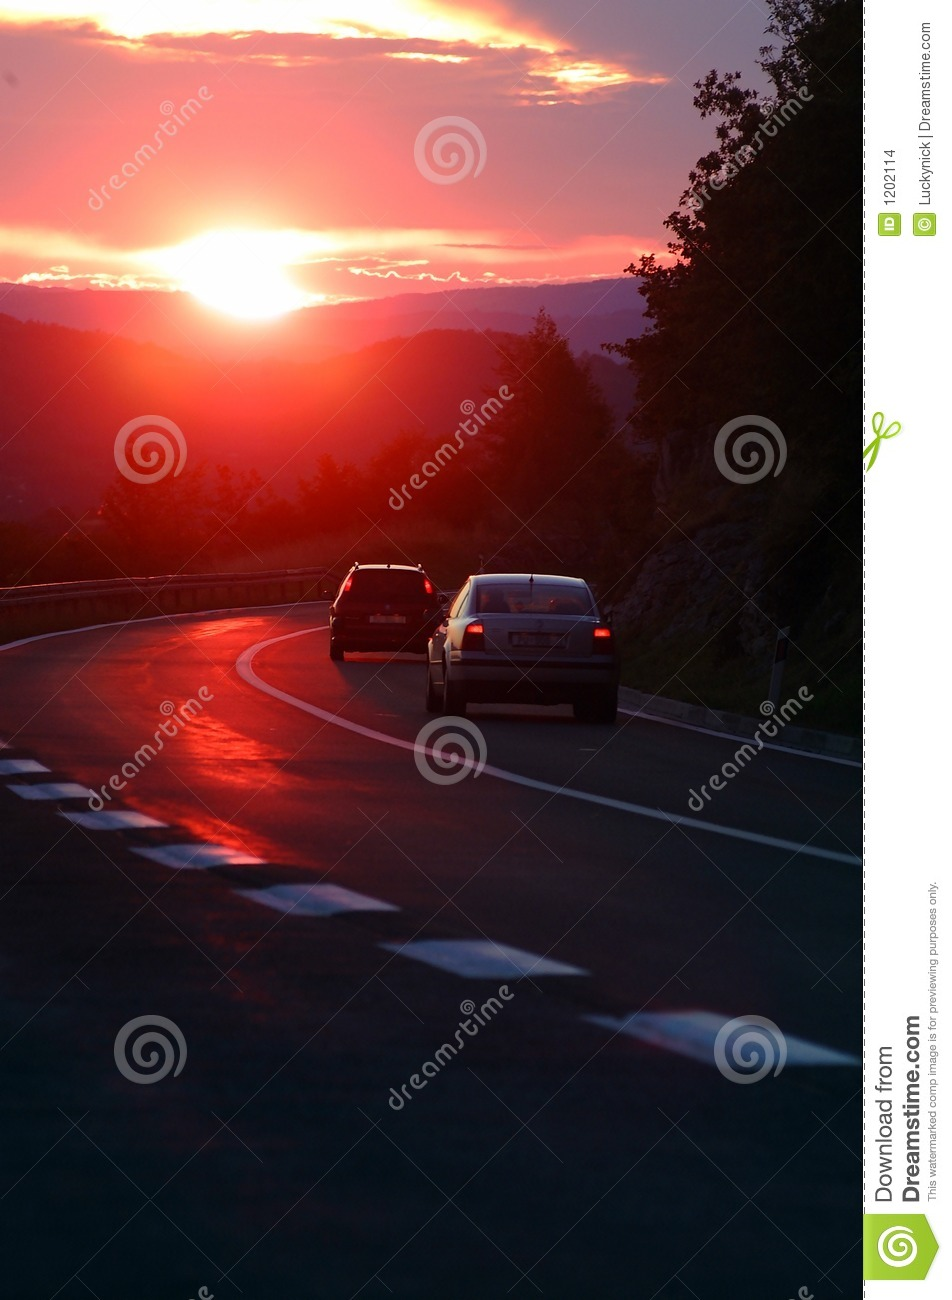 Cars in sunset